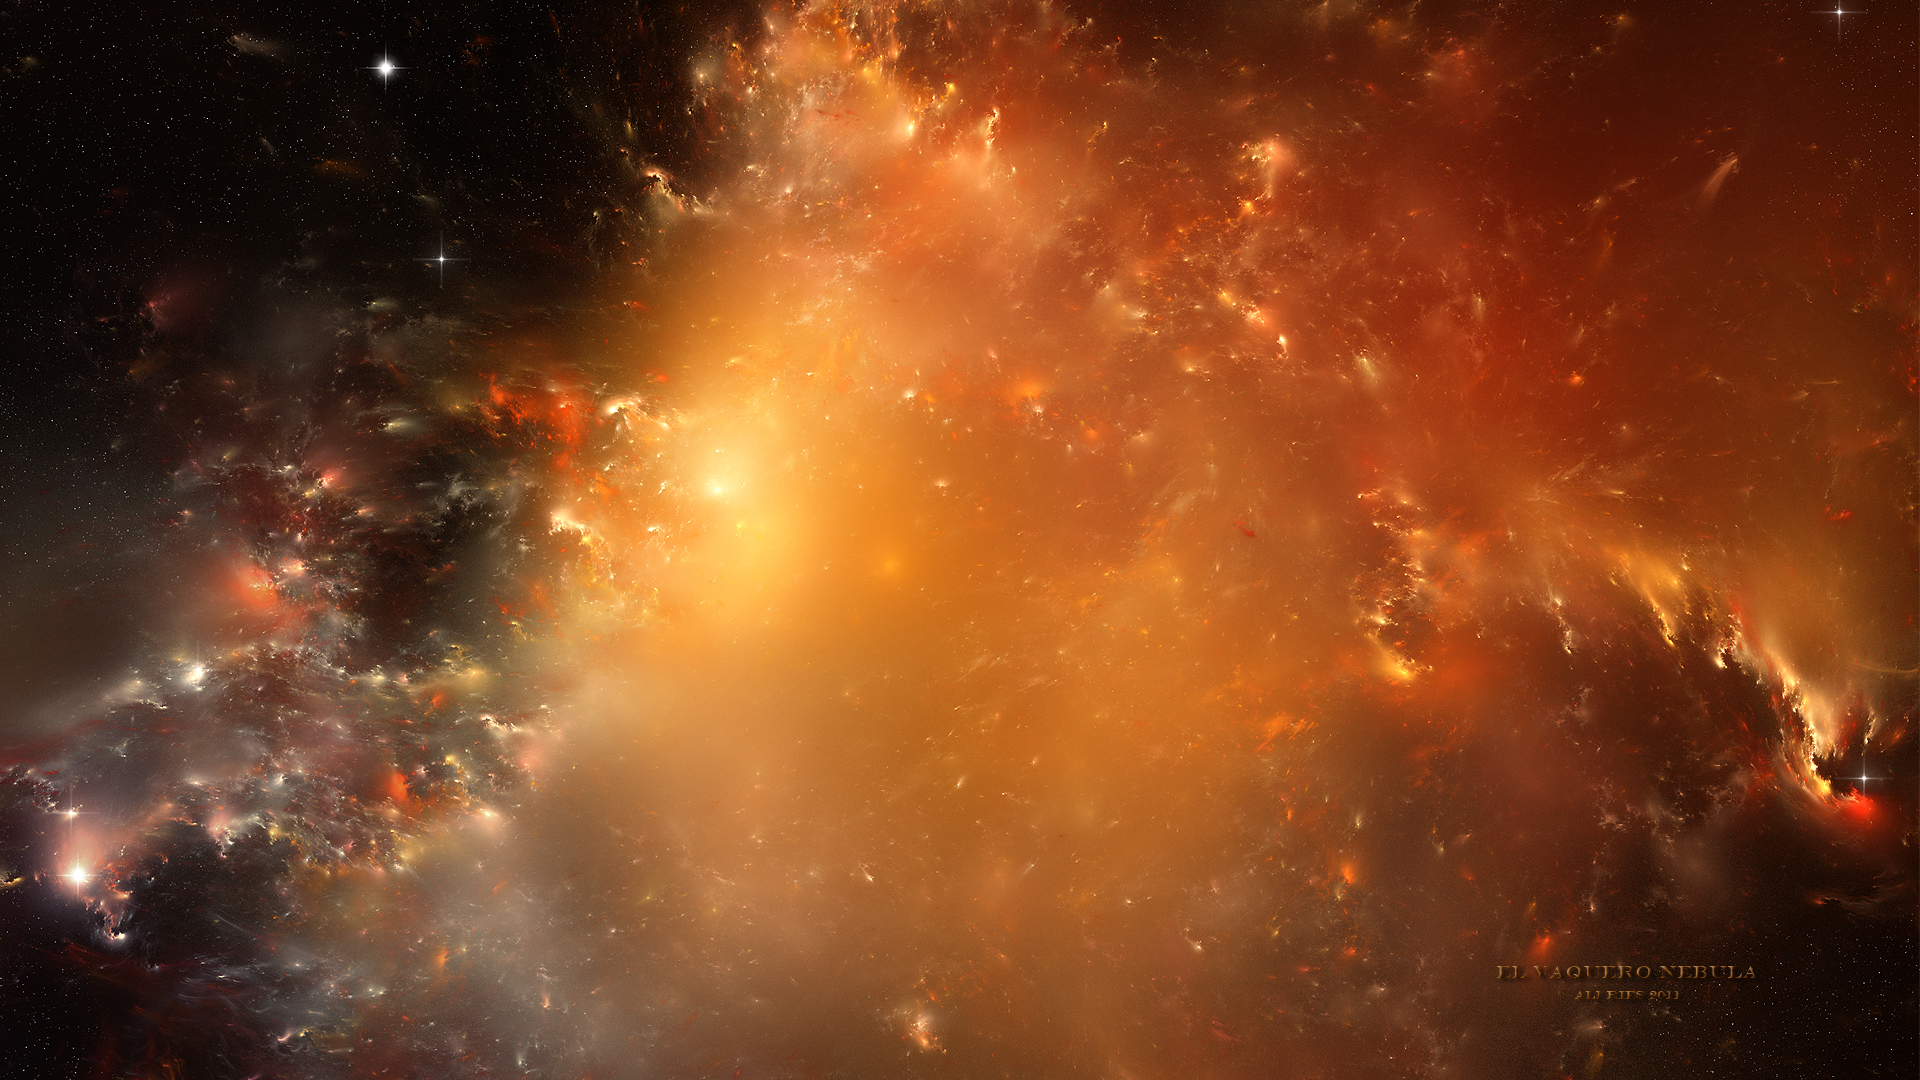 Science-Fiction - Nebula Hintergrundbild